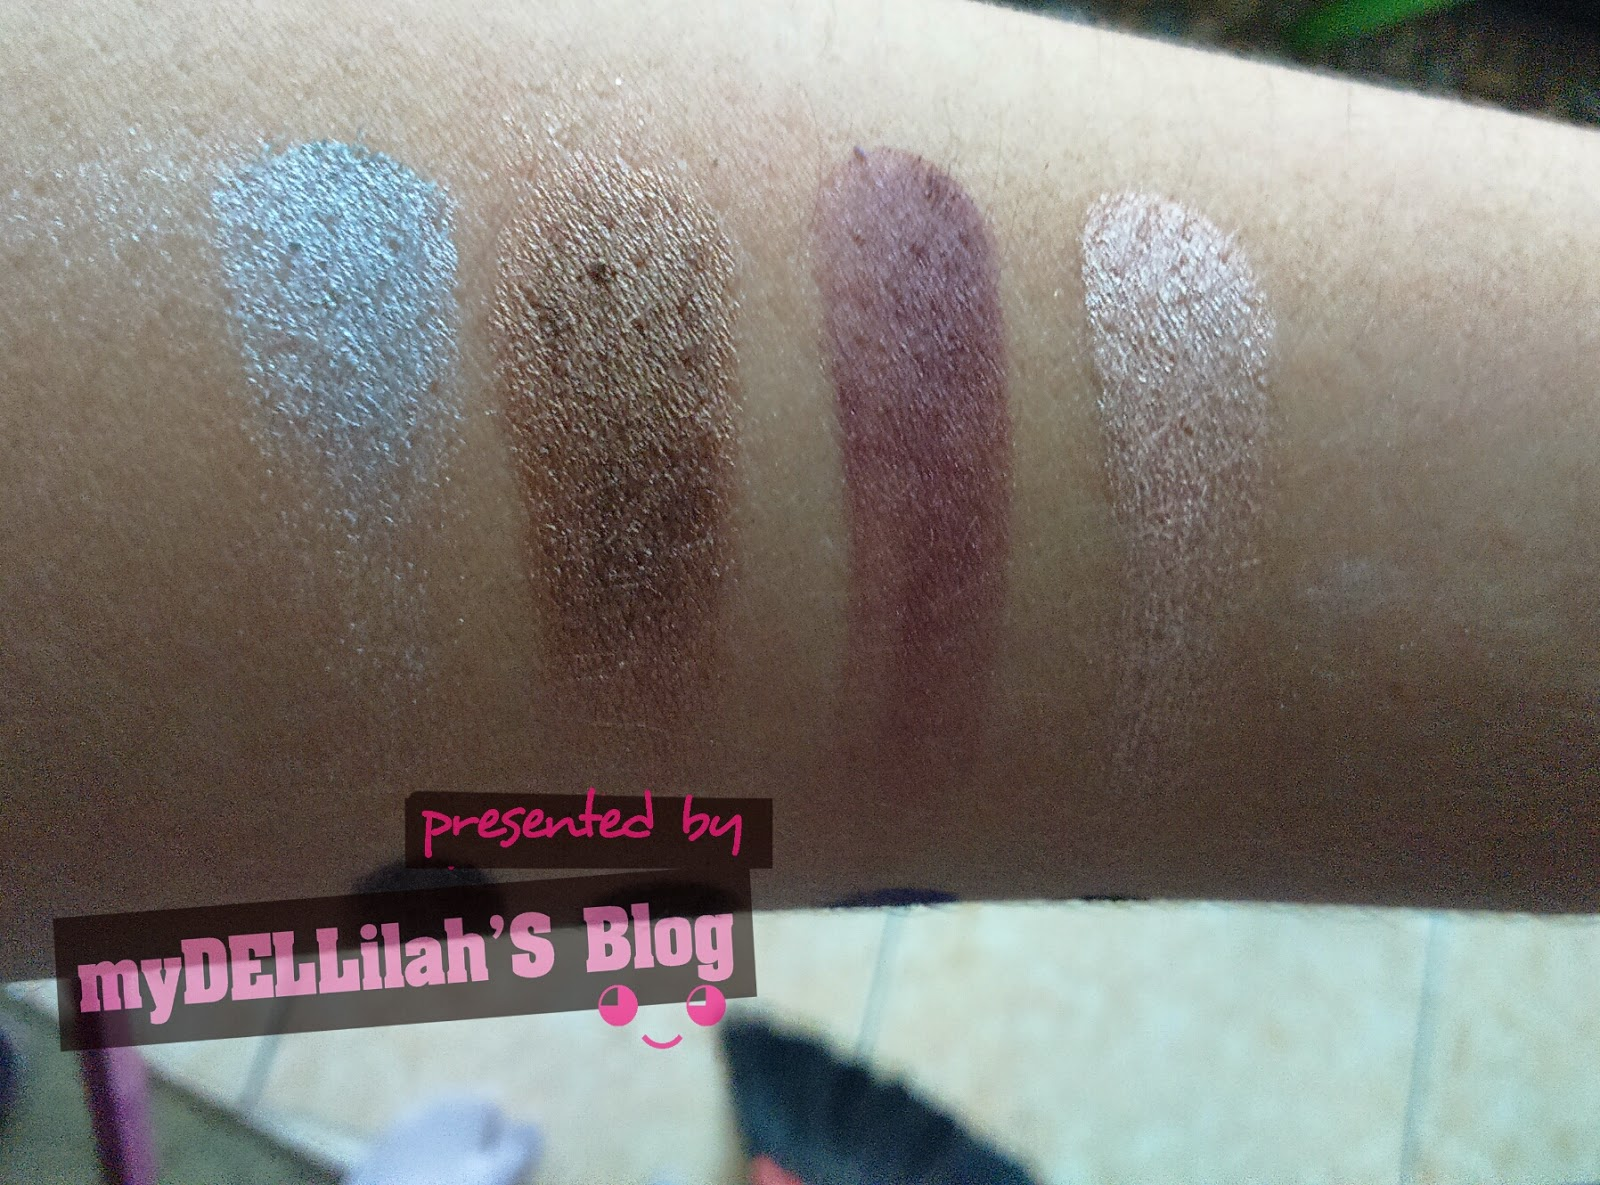 SWATCH OF Sephora Desert Palette